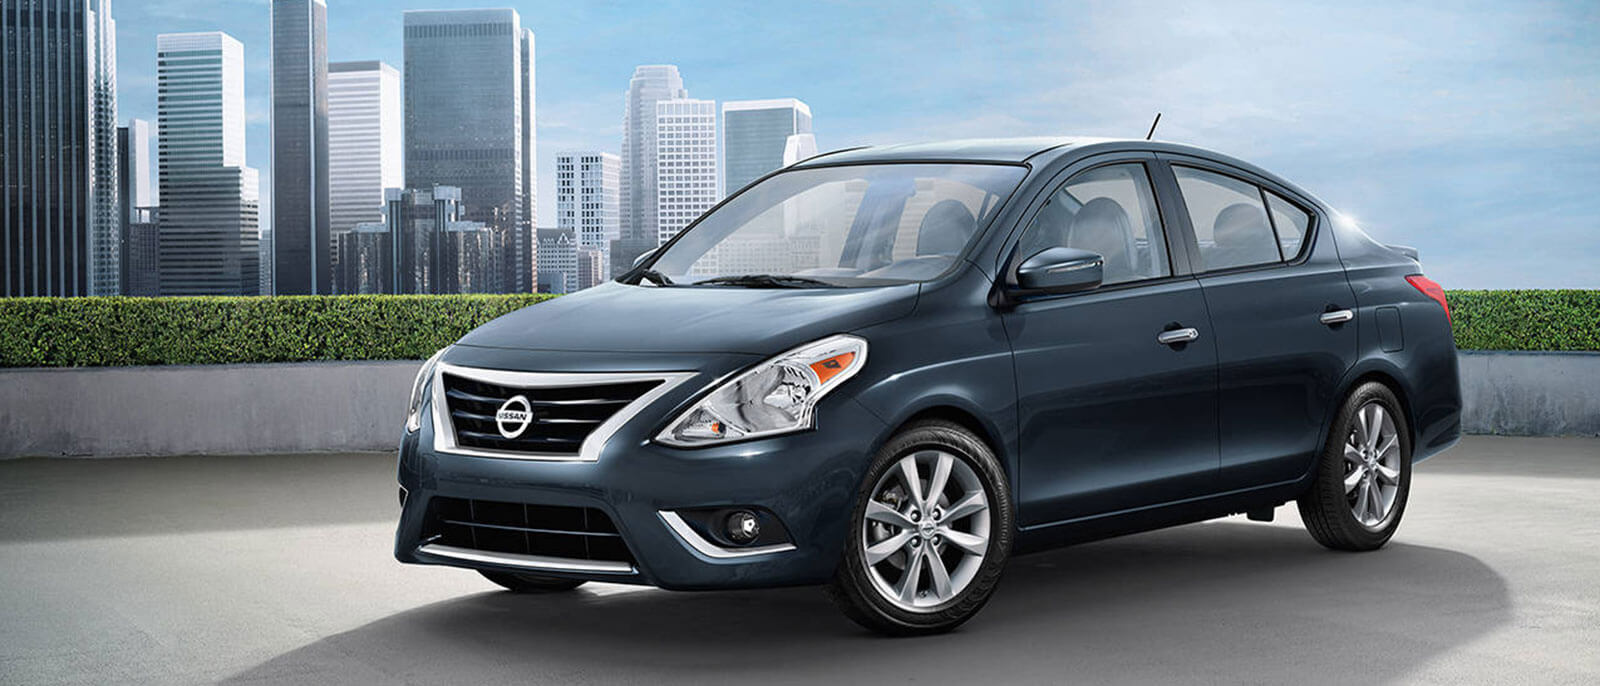 2017 Nissan Versa in the city